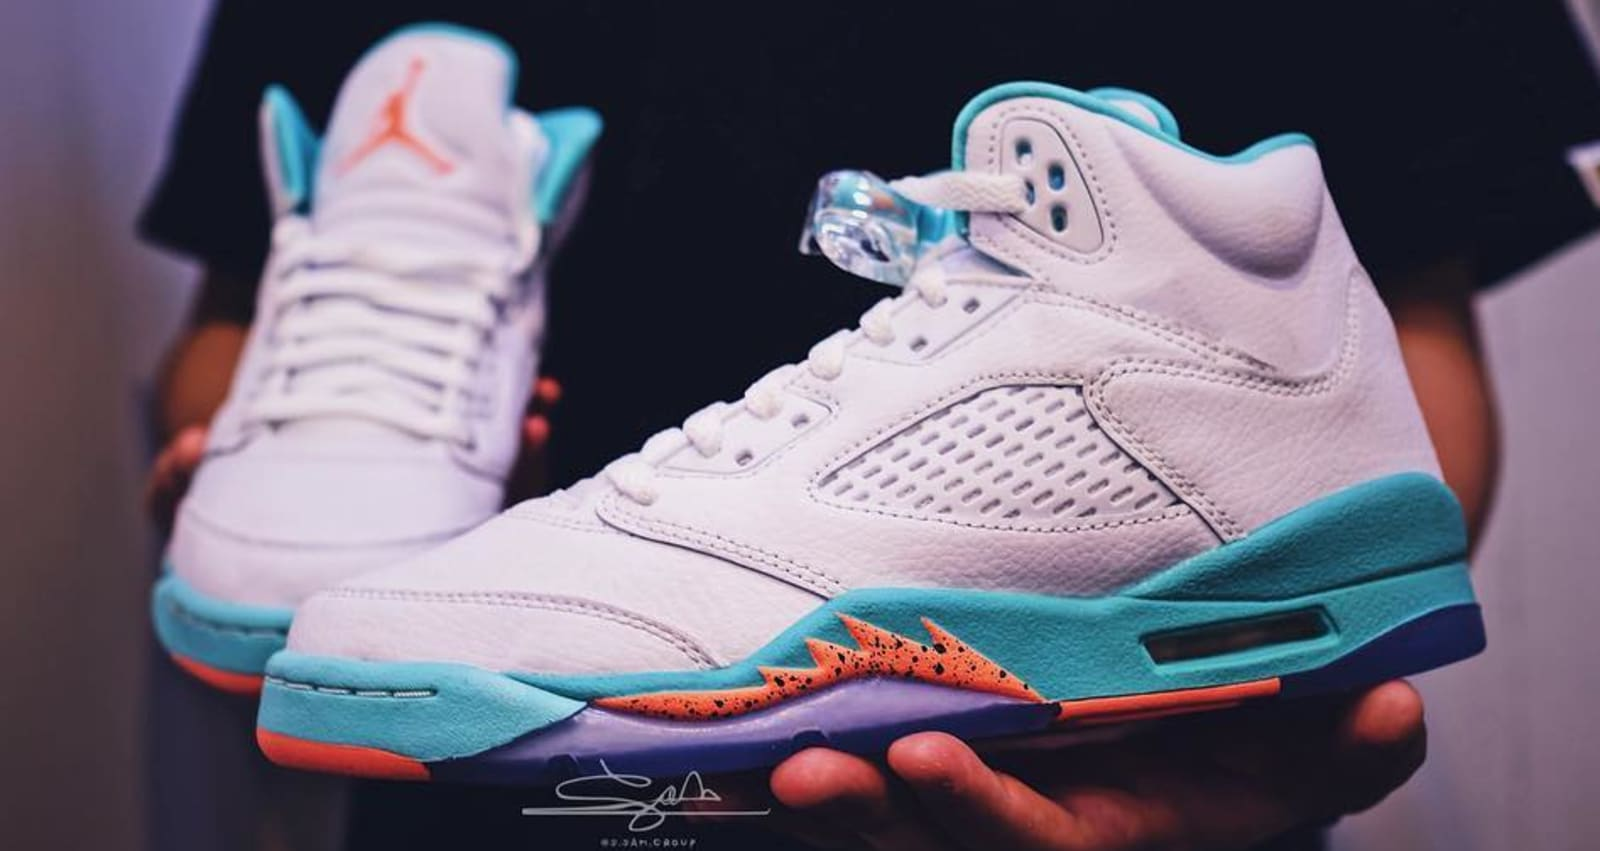 44e8d928d65 Air Jordan 5 GS 'Miami' Teal/Orange | Sole Collector